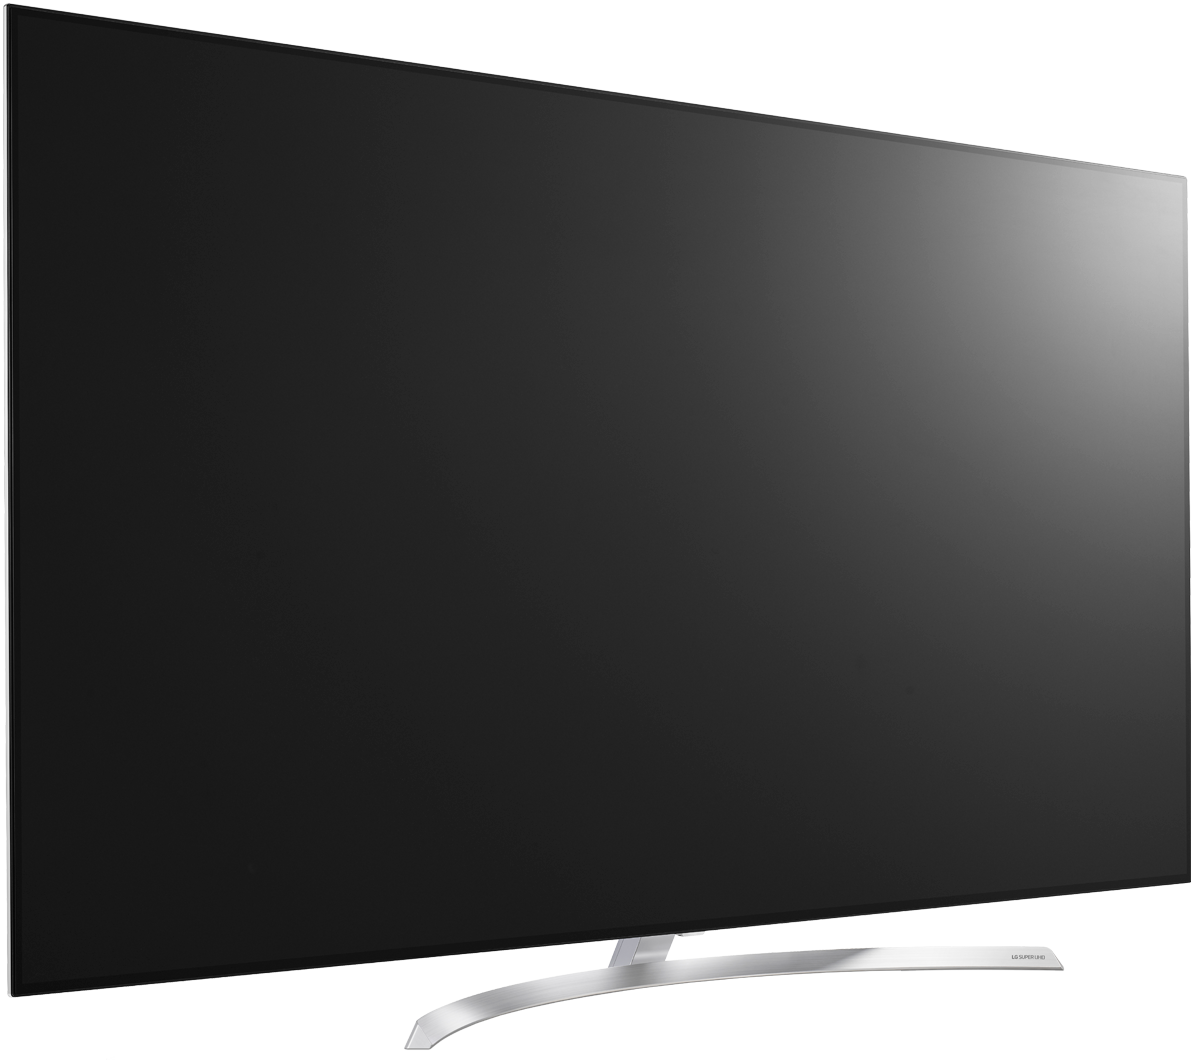 lg 55sj850v lcd led tv suhd display 55 140 cm silber g nstig kaufen uhd tv media. Black Bedroom Furniture Sets. Home Design Ideas